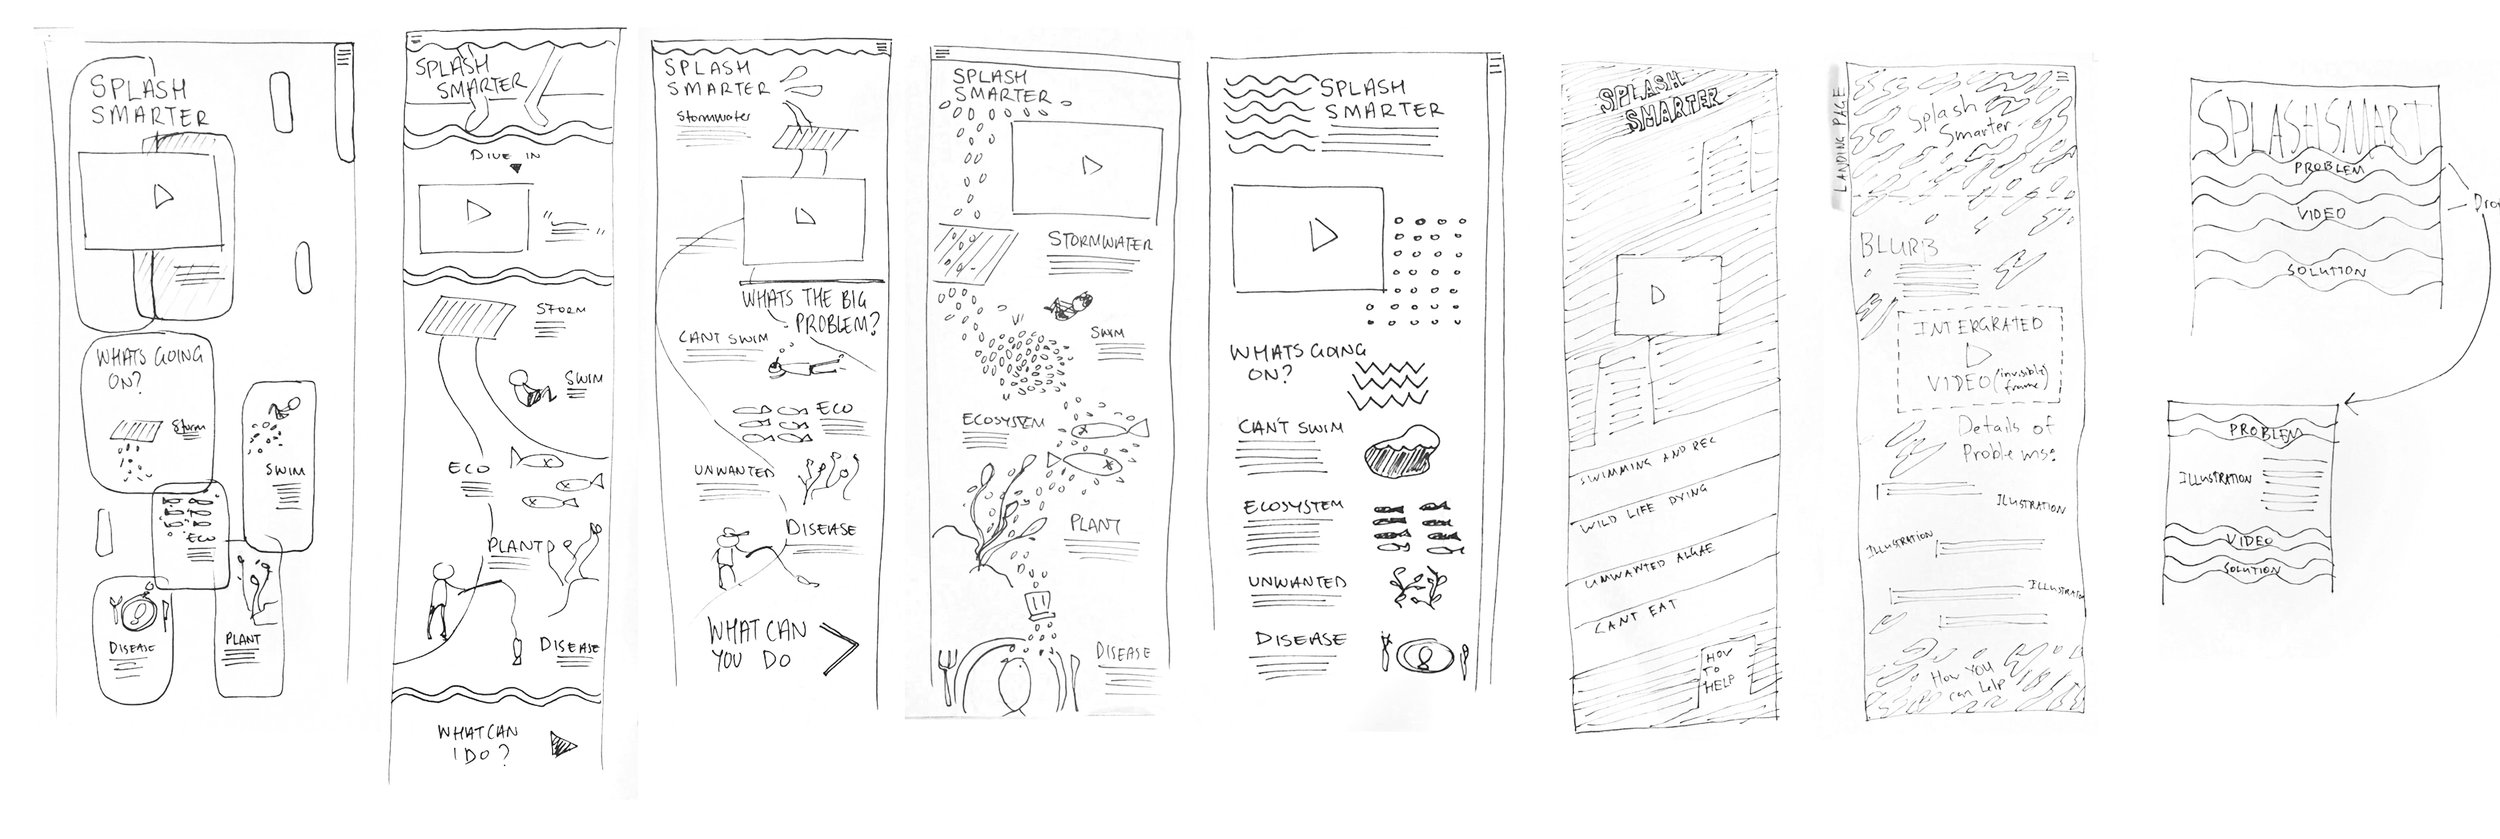 Early wire framing of website concepts.